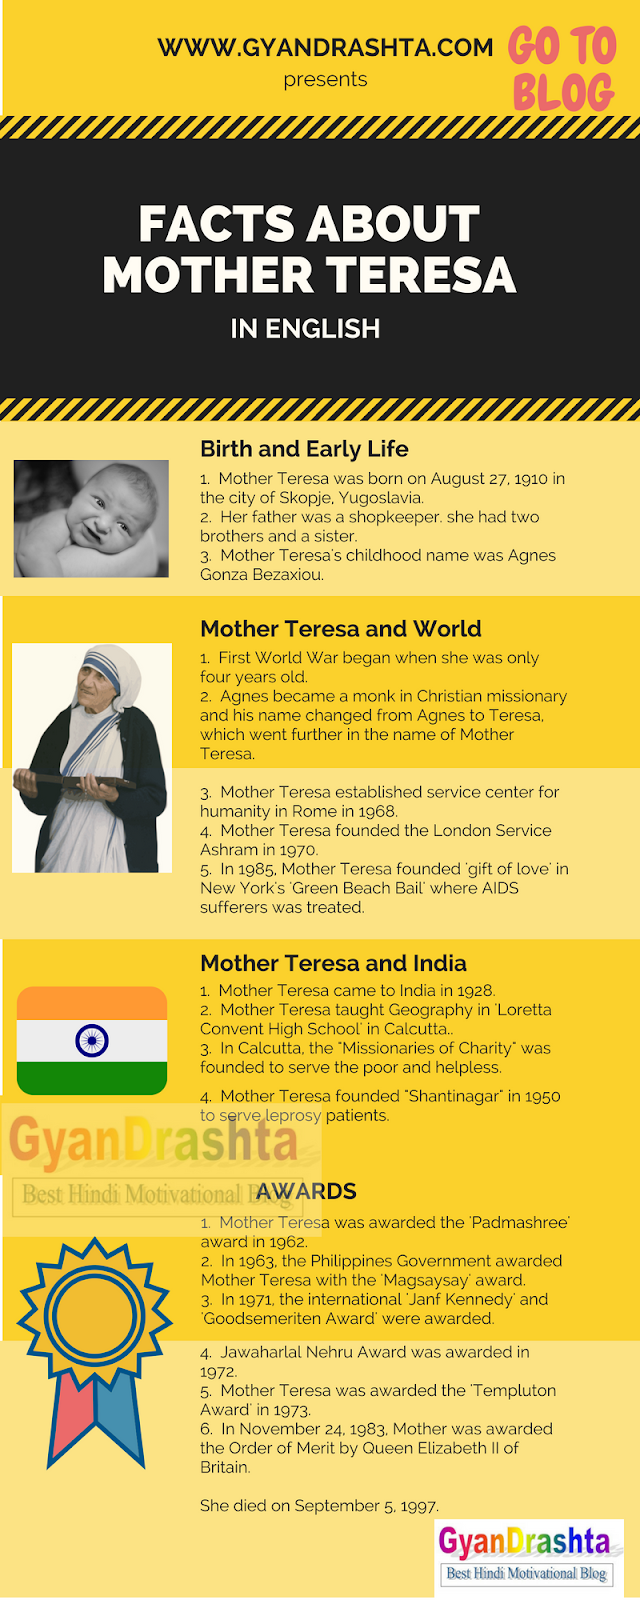 mother teresa in english